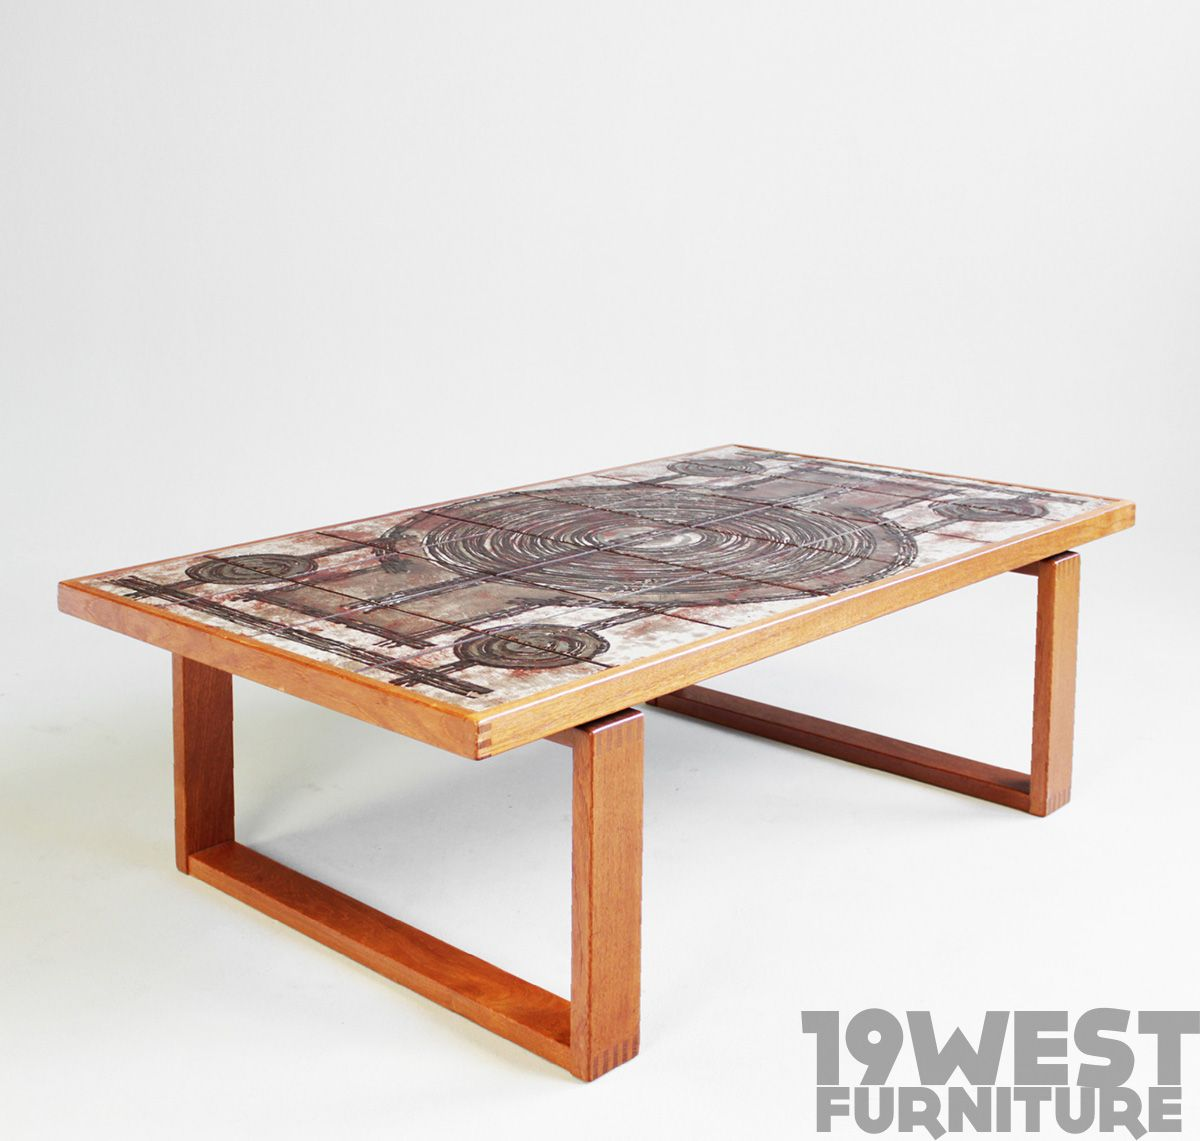 Luxury Square Coffee Table with Stools